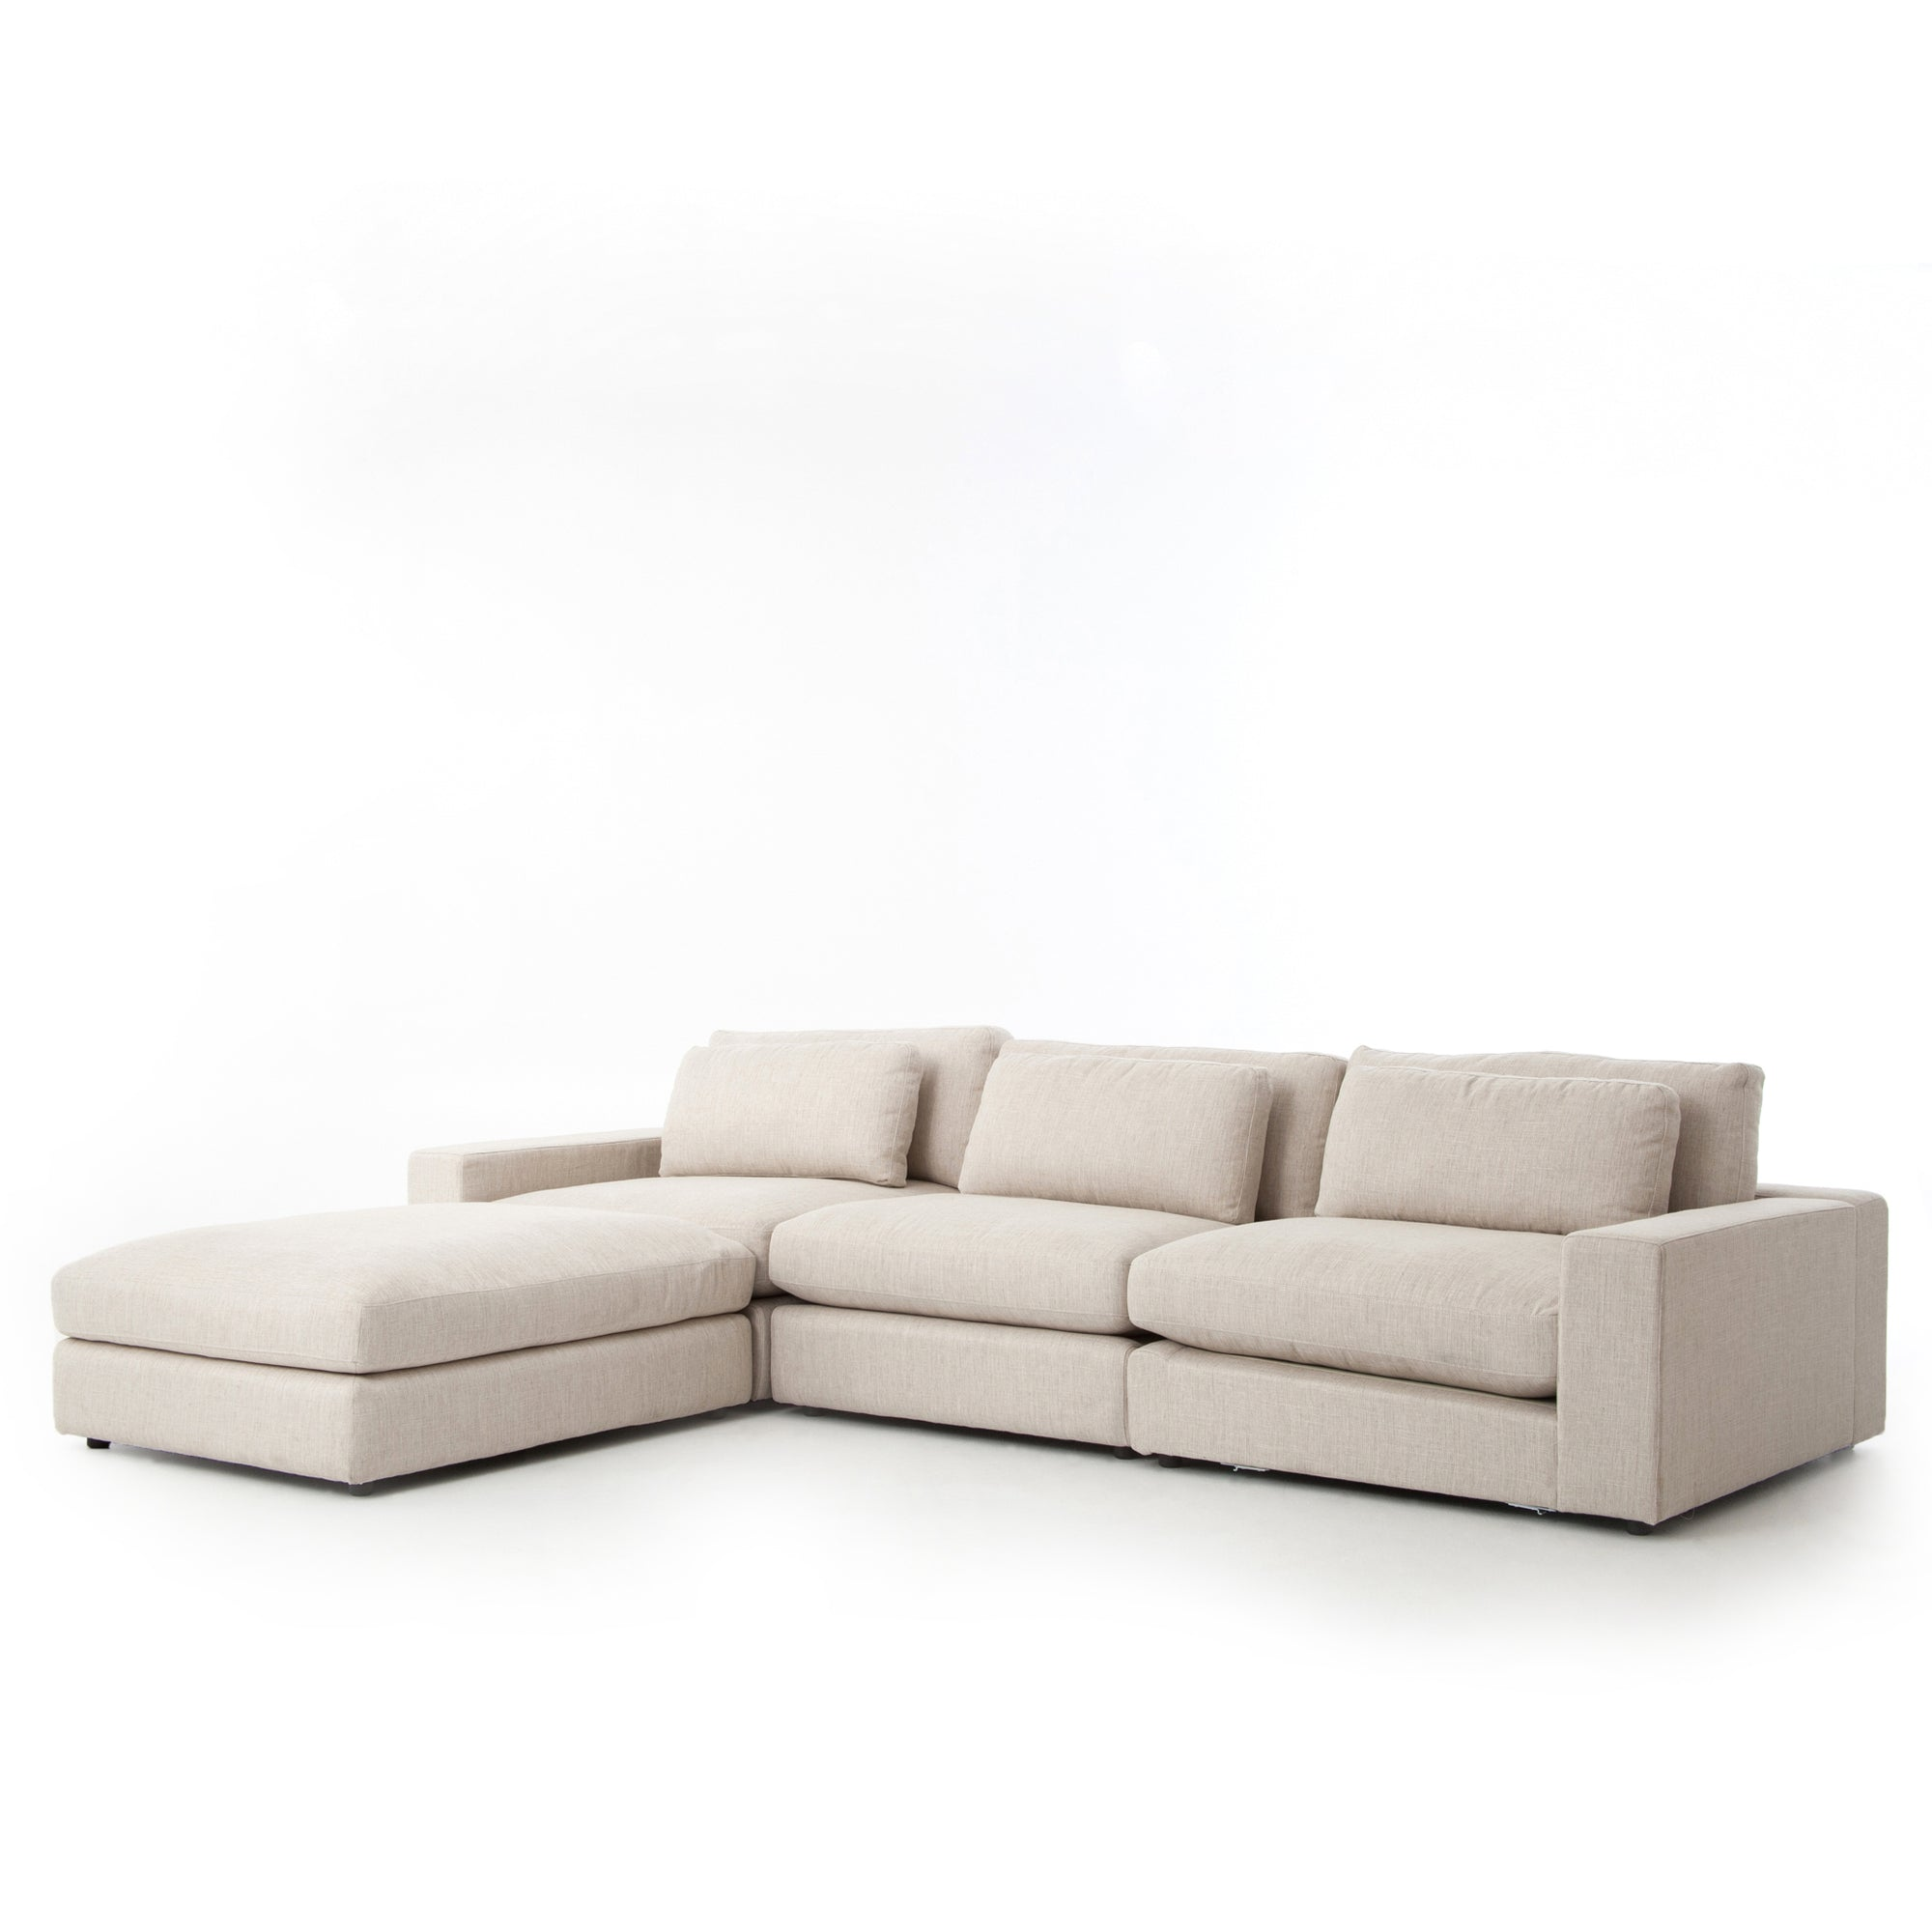 Bloor Sofa W Ottoman Kit - Essence Natural